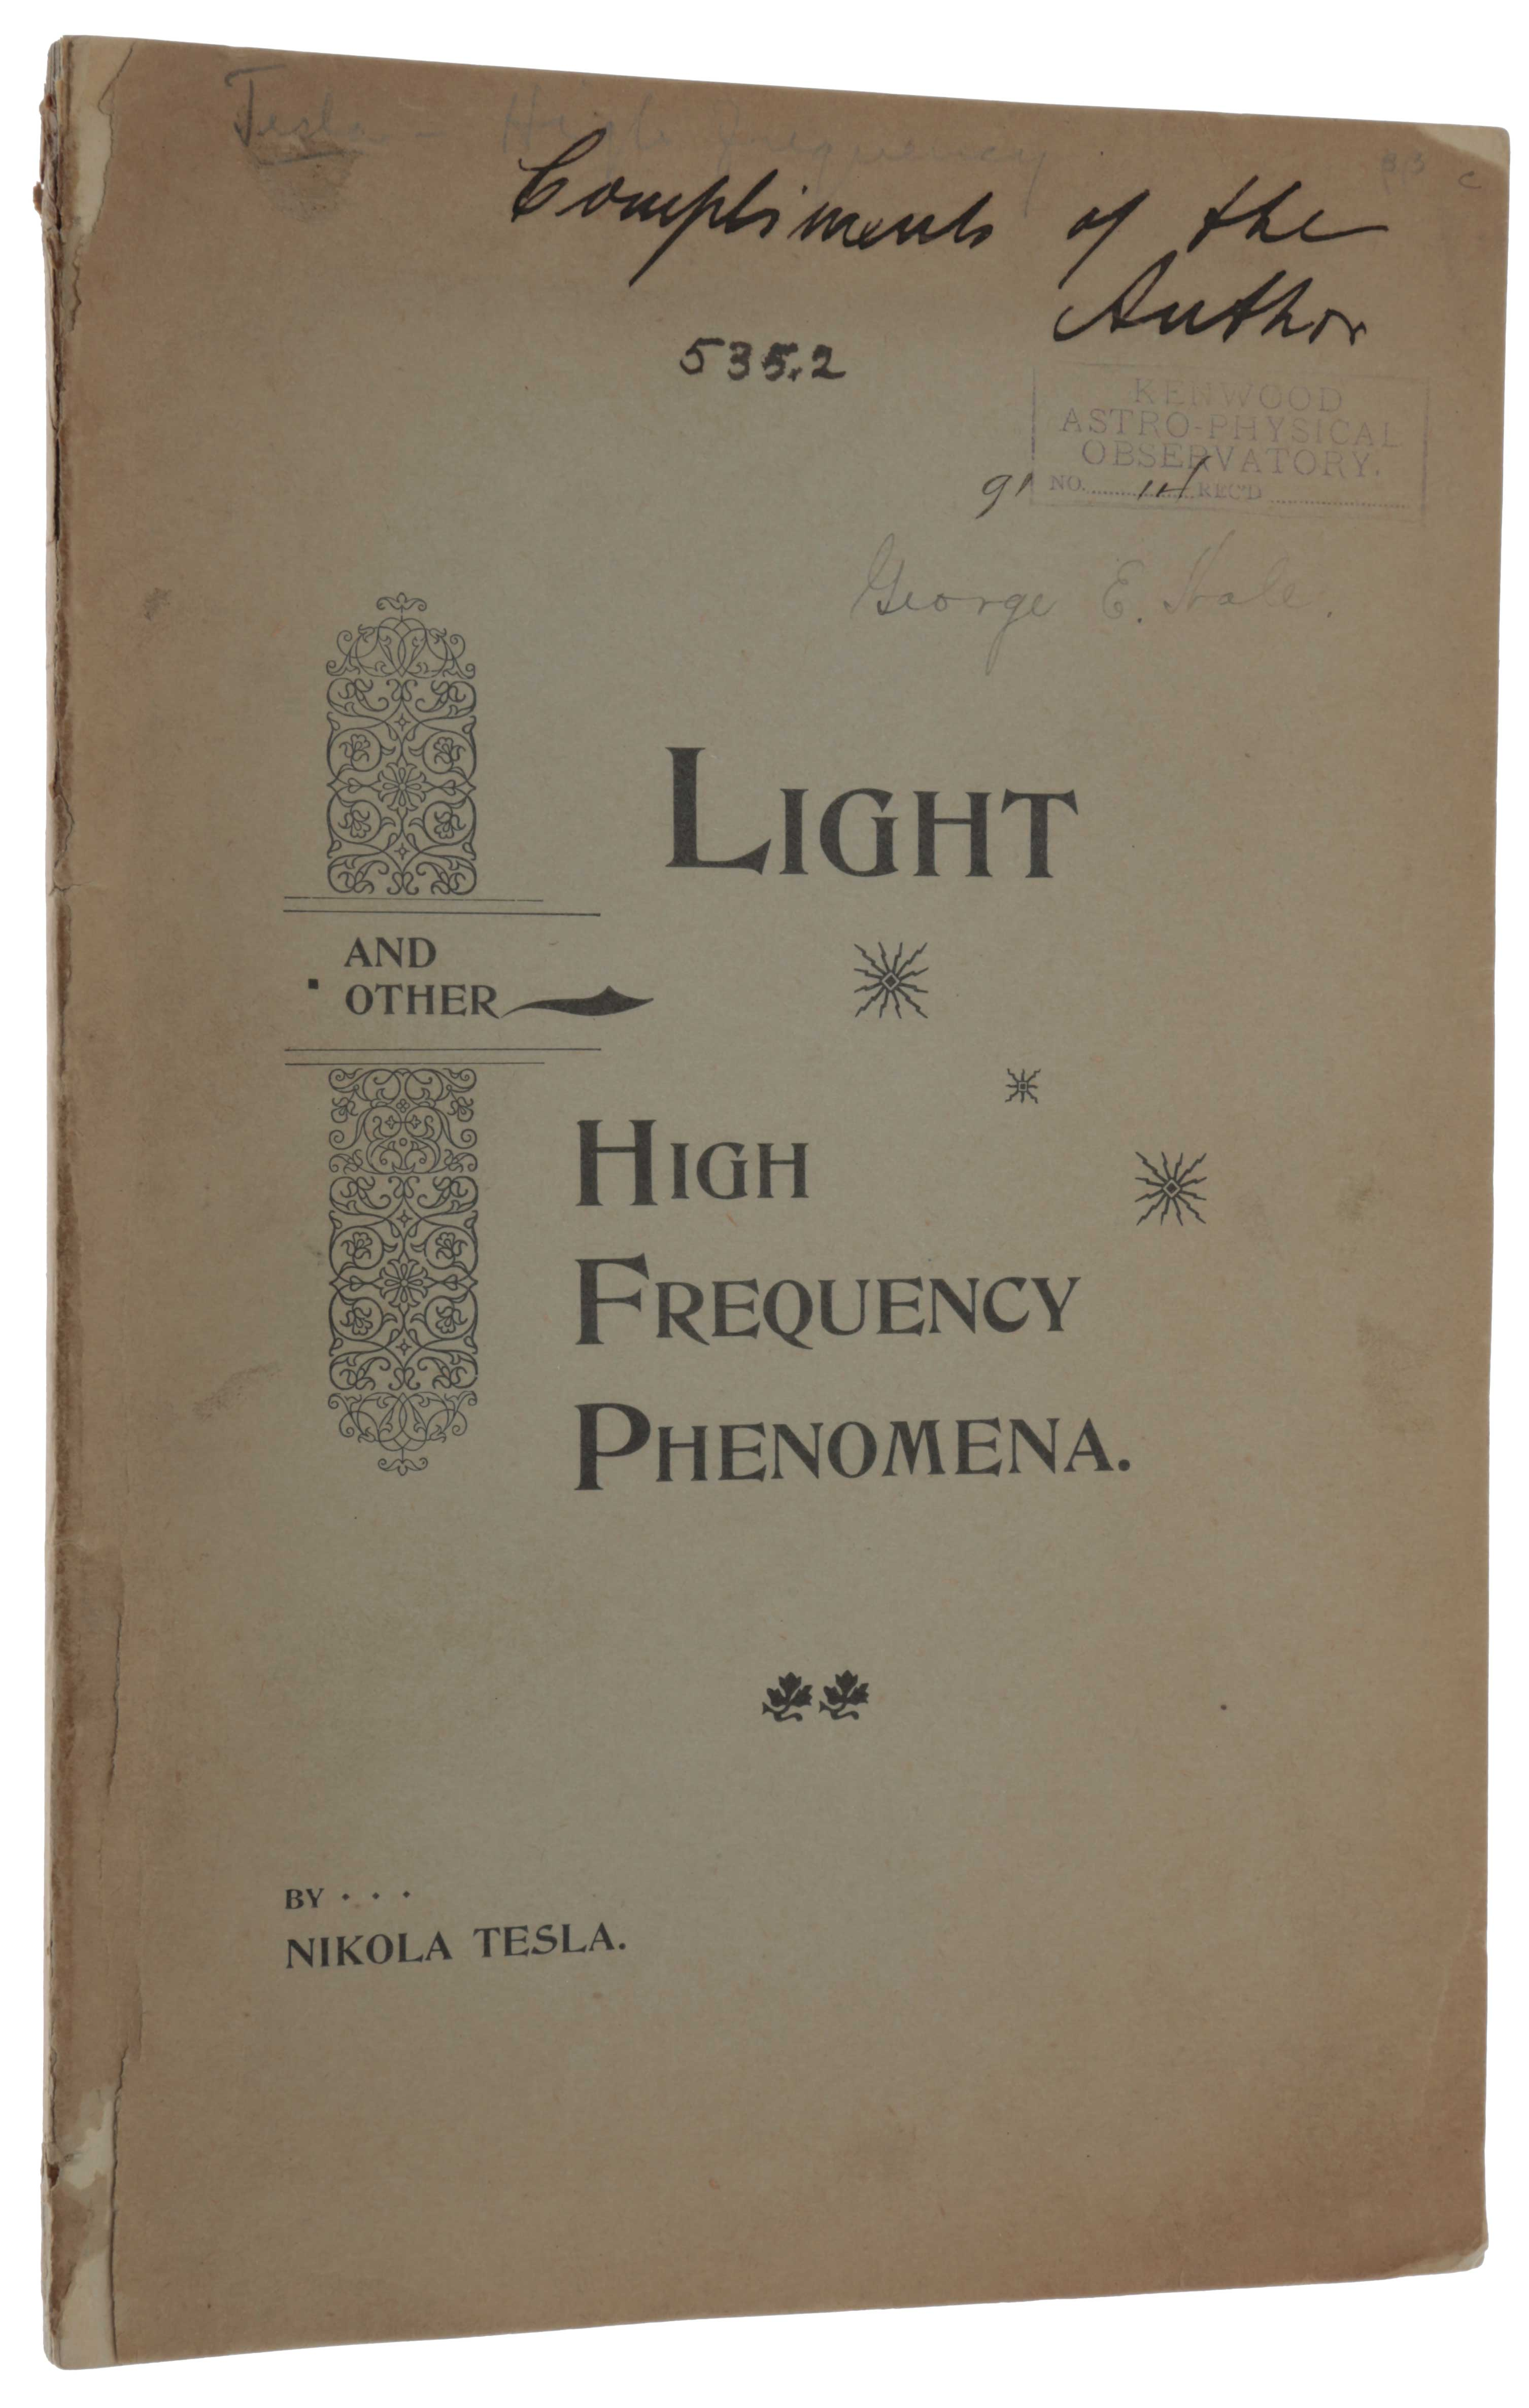 Light and other High Frequency Phenomena. A lecture delivered before the National Electric Light Association at its Sixteenth Convention held at St. Louis, MO, February 28th, March 1st and 2d, 1893. Nikola TESLA.